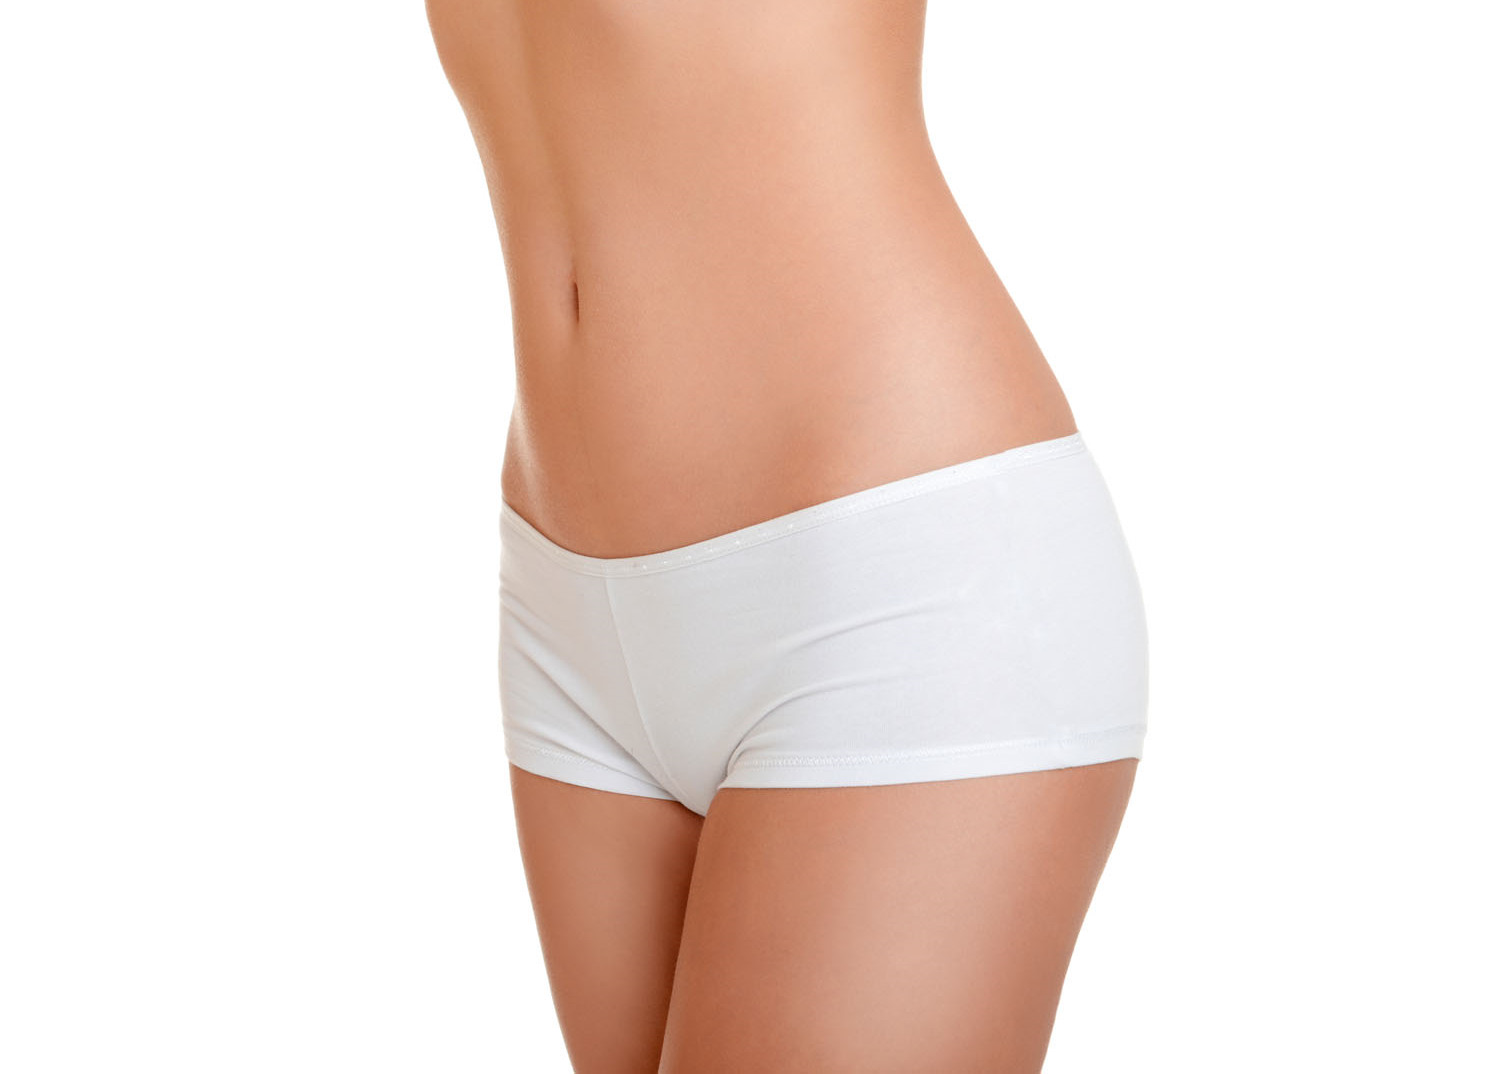 Advanced skin tightening and cellulite reduction treatments for slim - skinny women, by LipoTherapeia